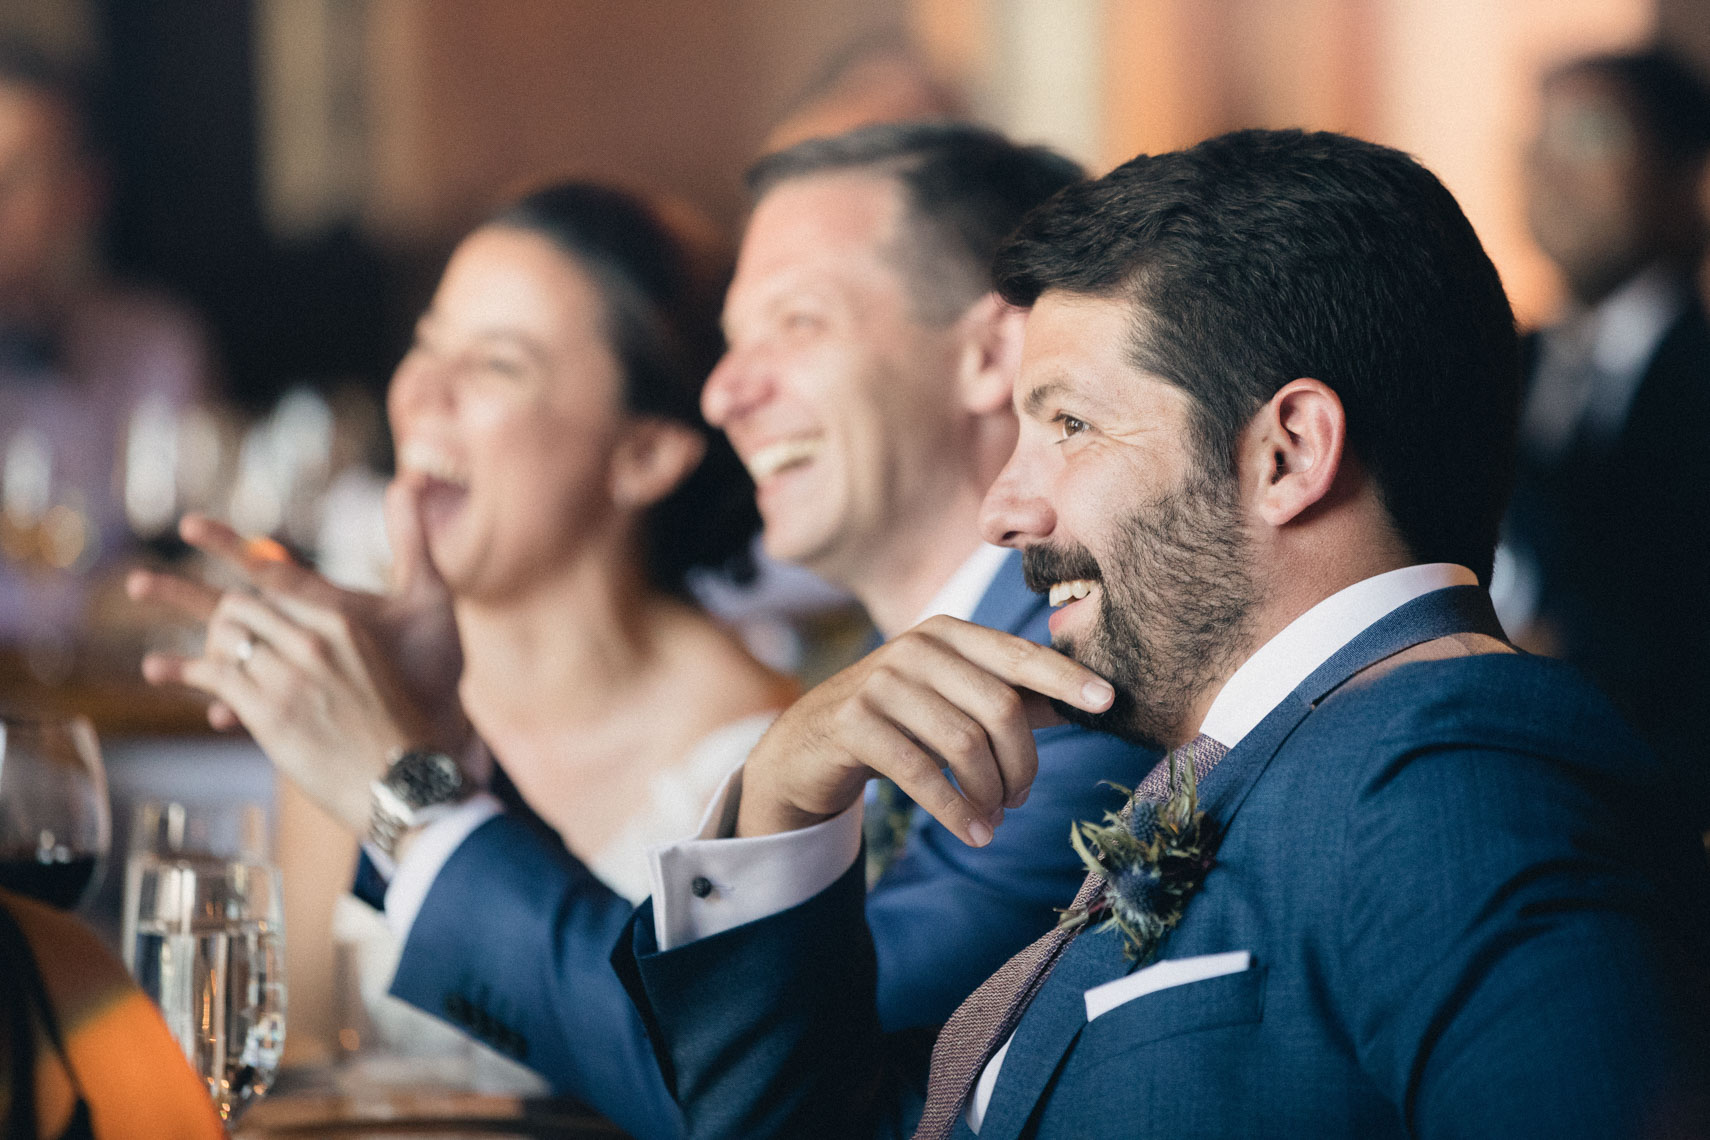 Groomsmen laughing during wedding reception at Banff Springs hotel venue